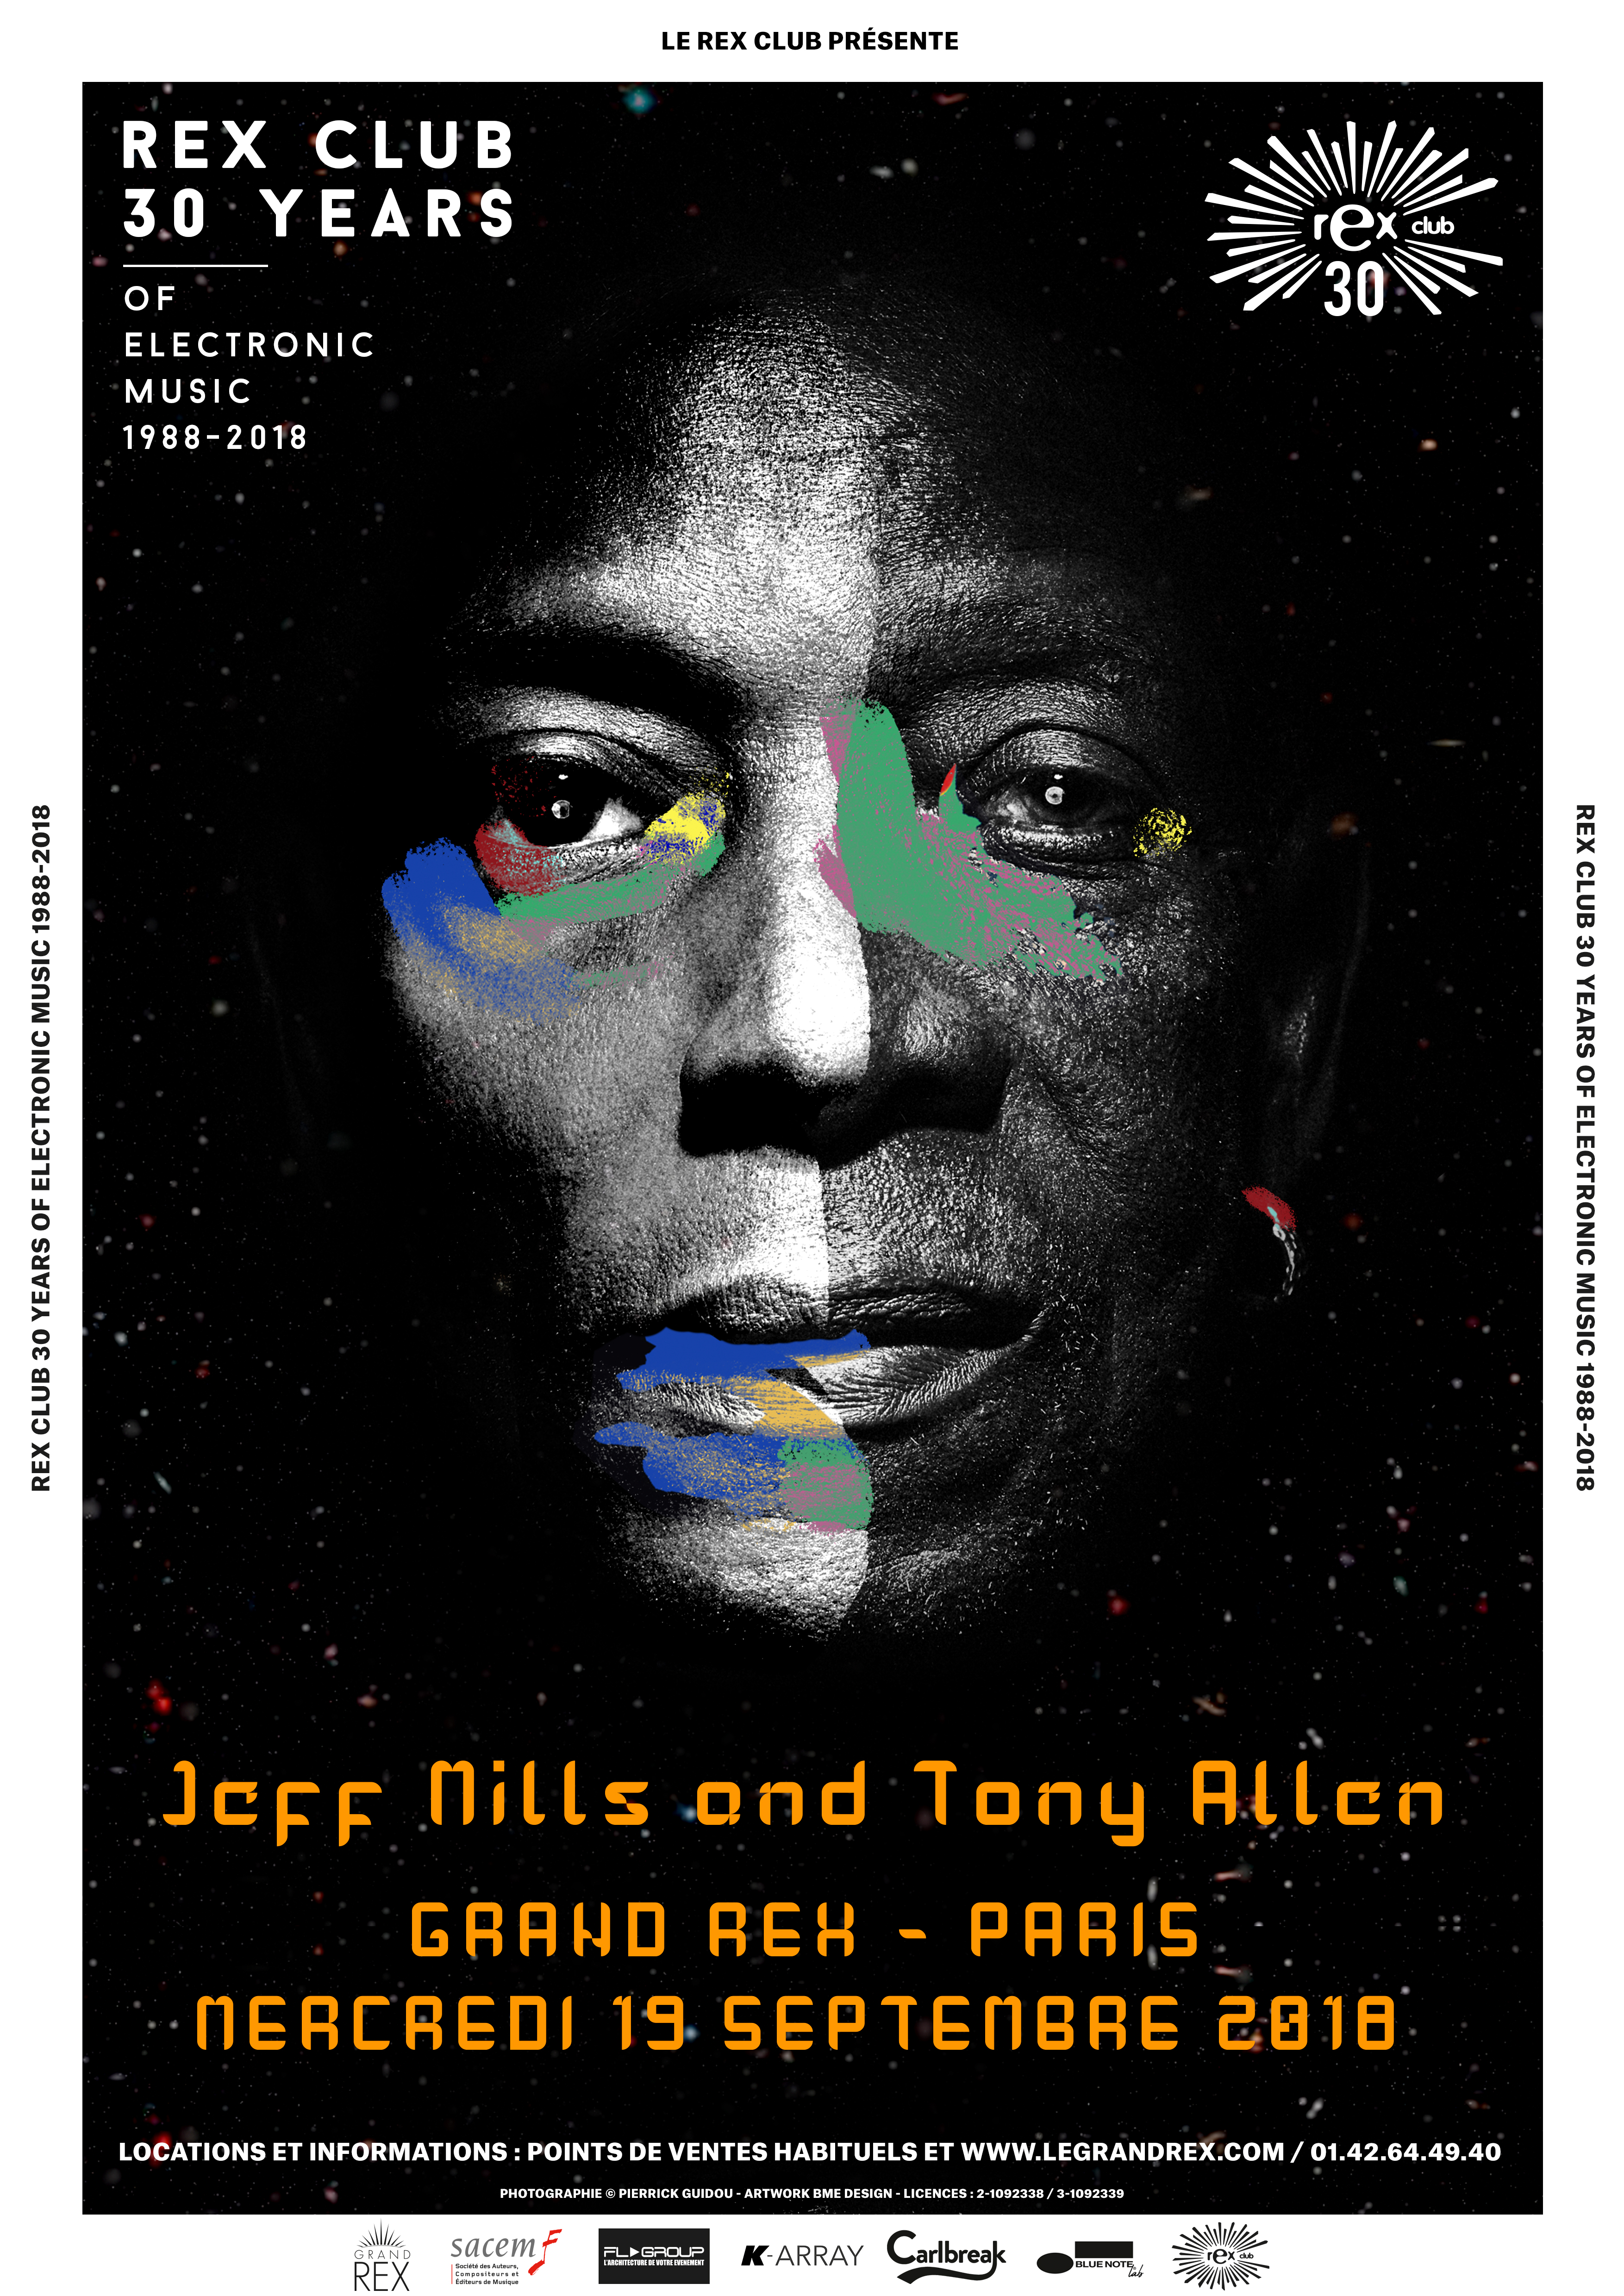 RexClub30_Poster-Template_A3_Tony_Allen_Jeff_Mills_190918